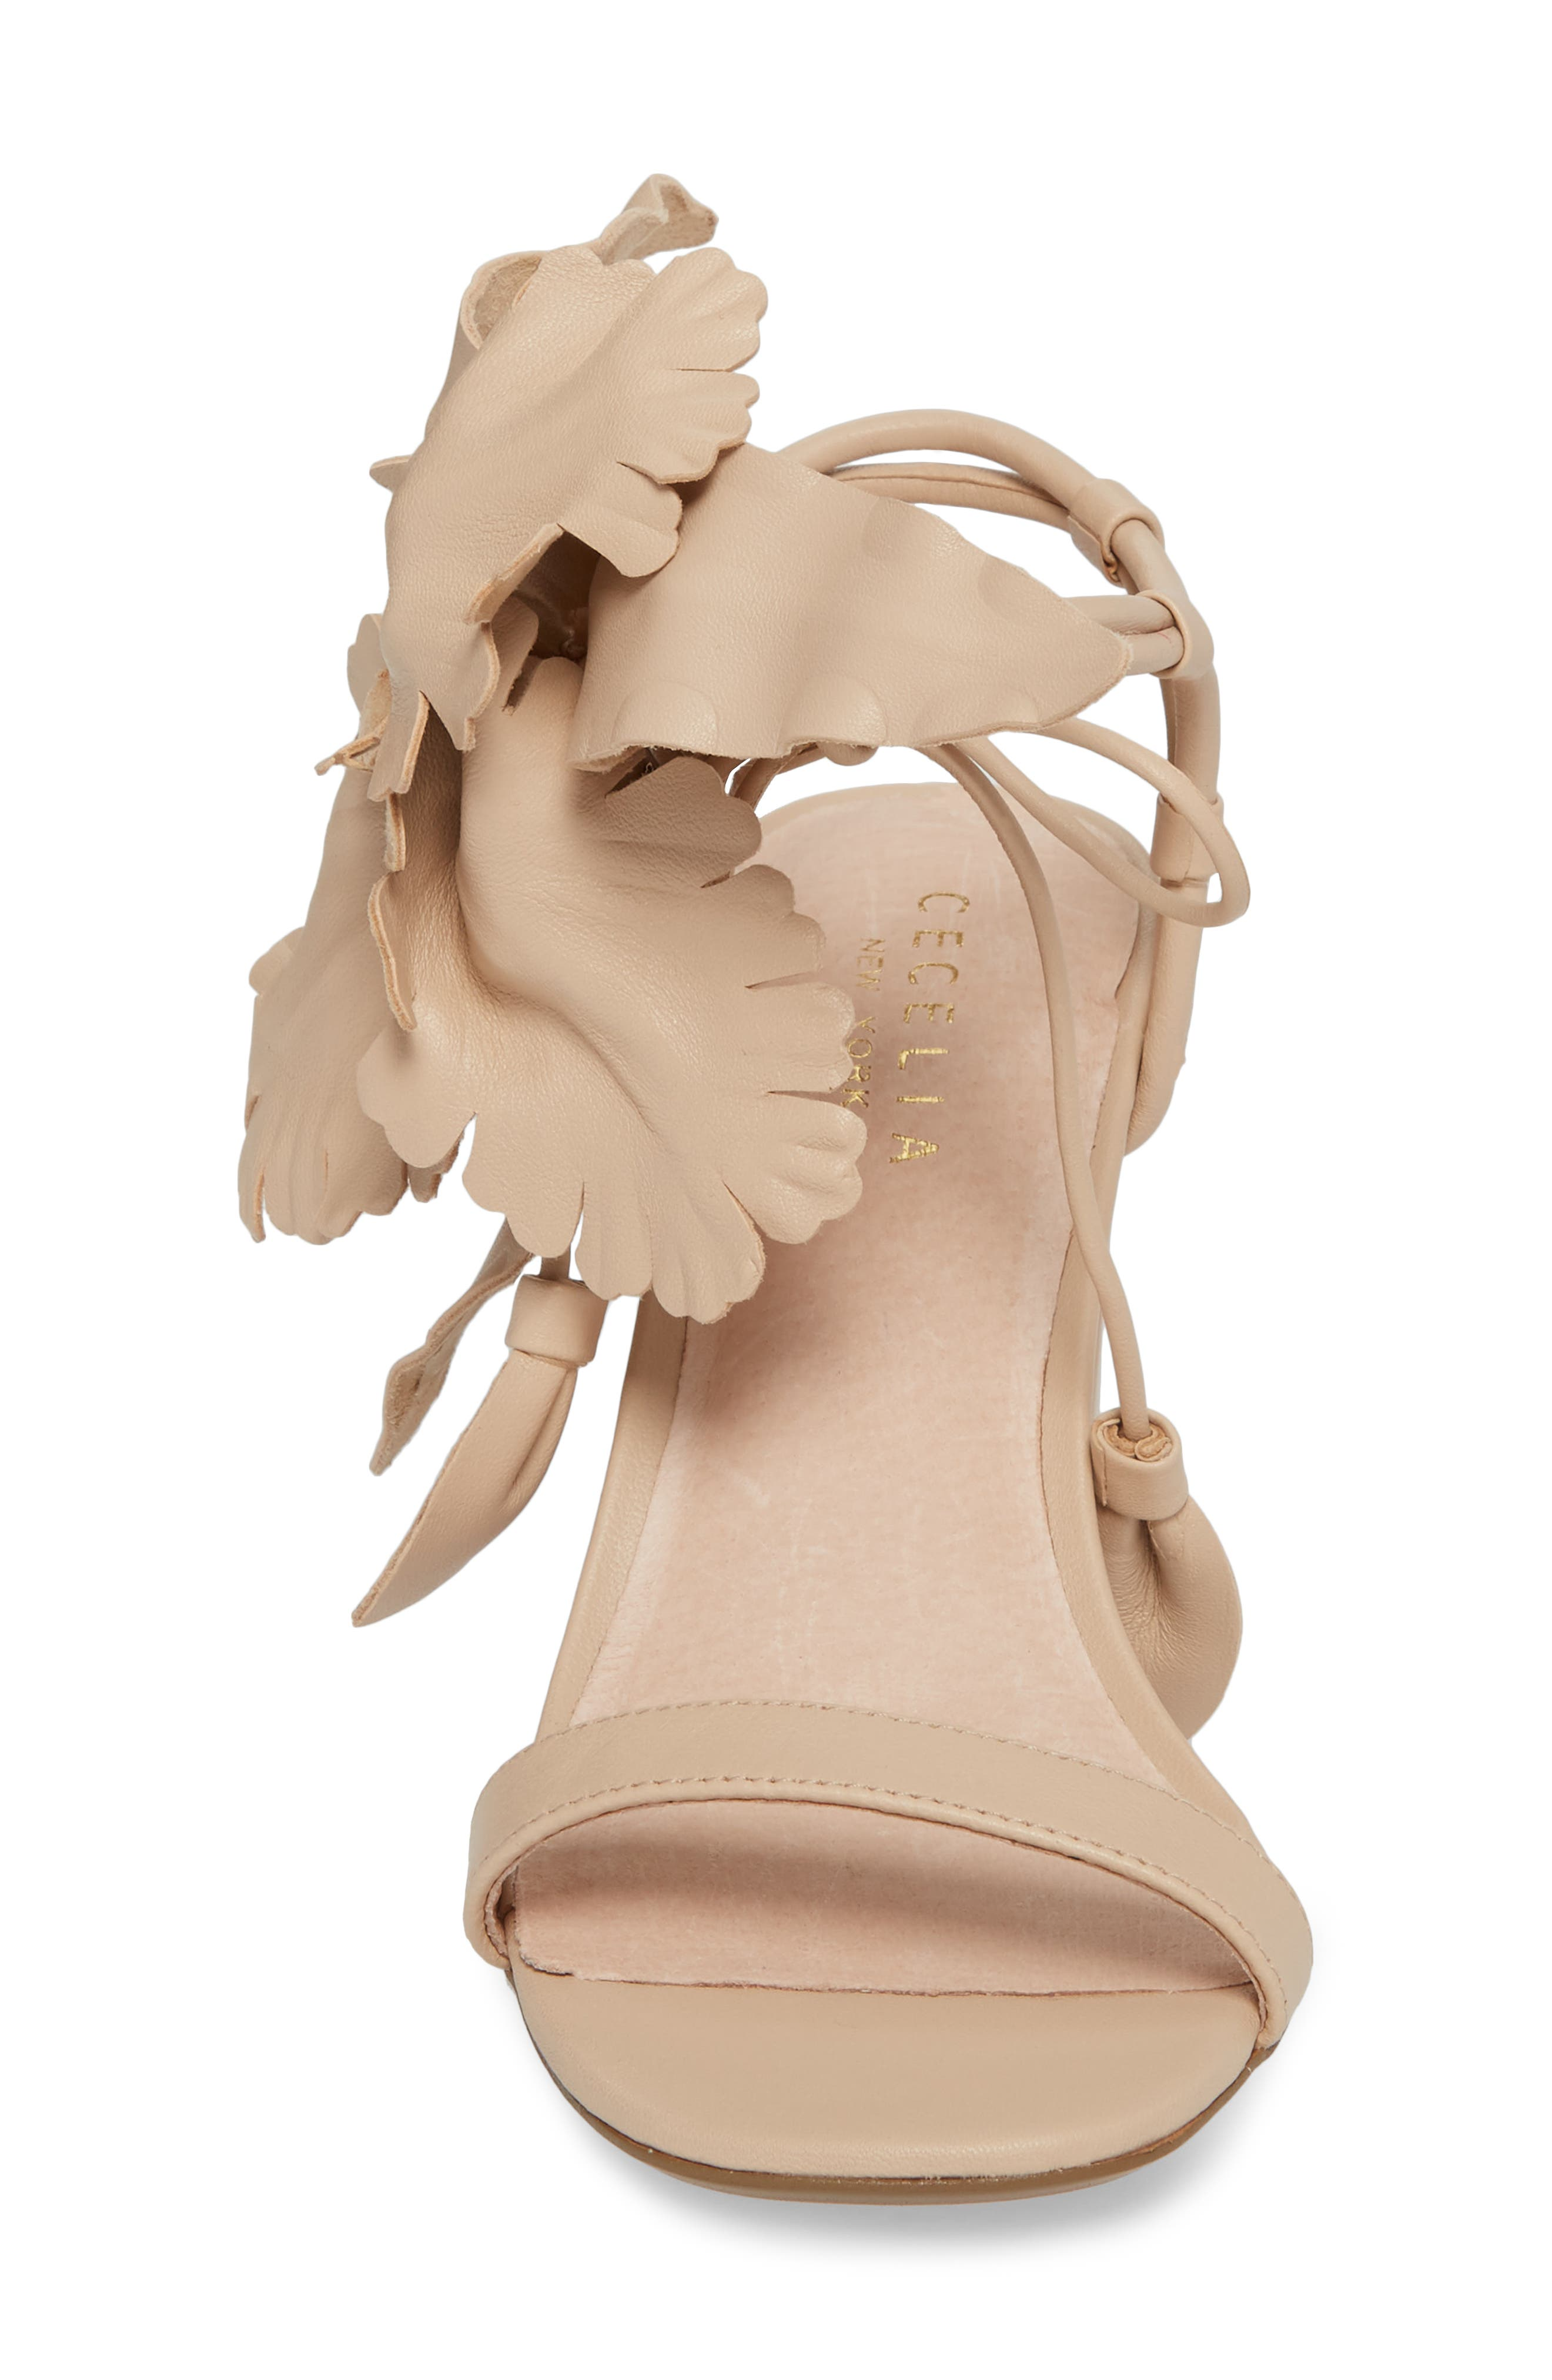 Hibiscus Sandal,                             Alternate thumbnail 4, color,                             Nude Leather